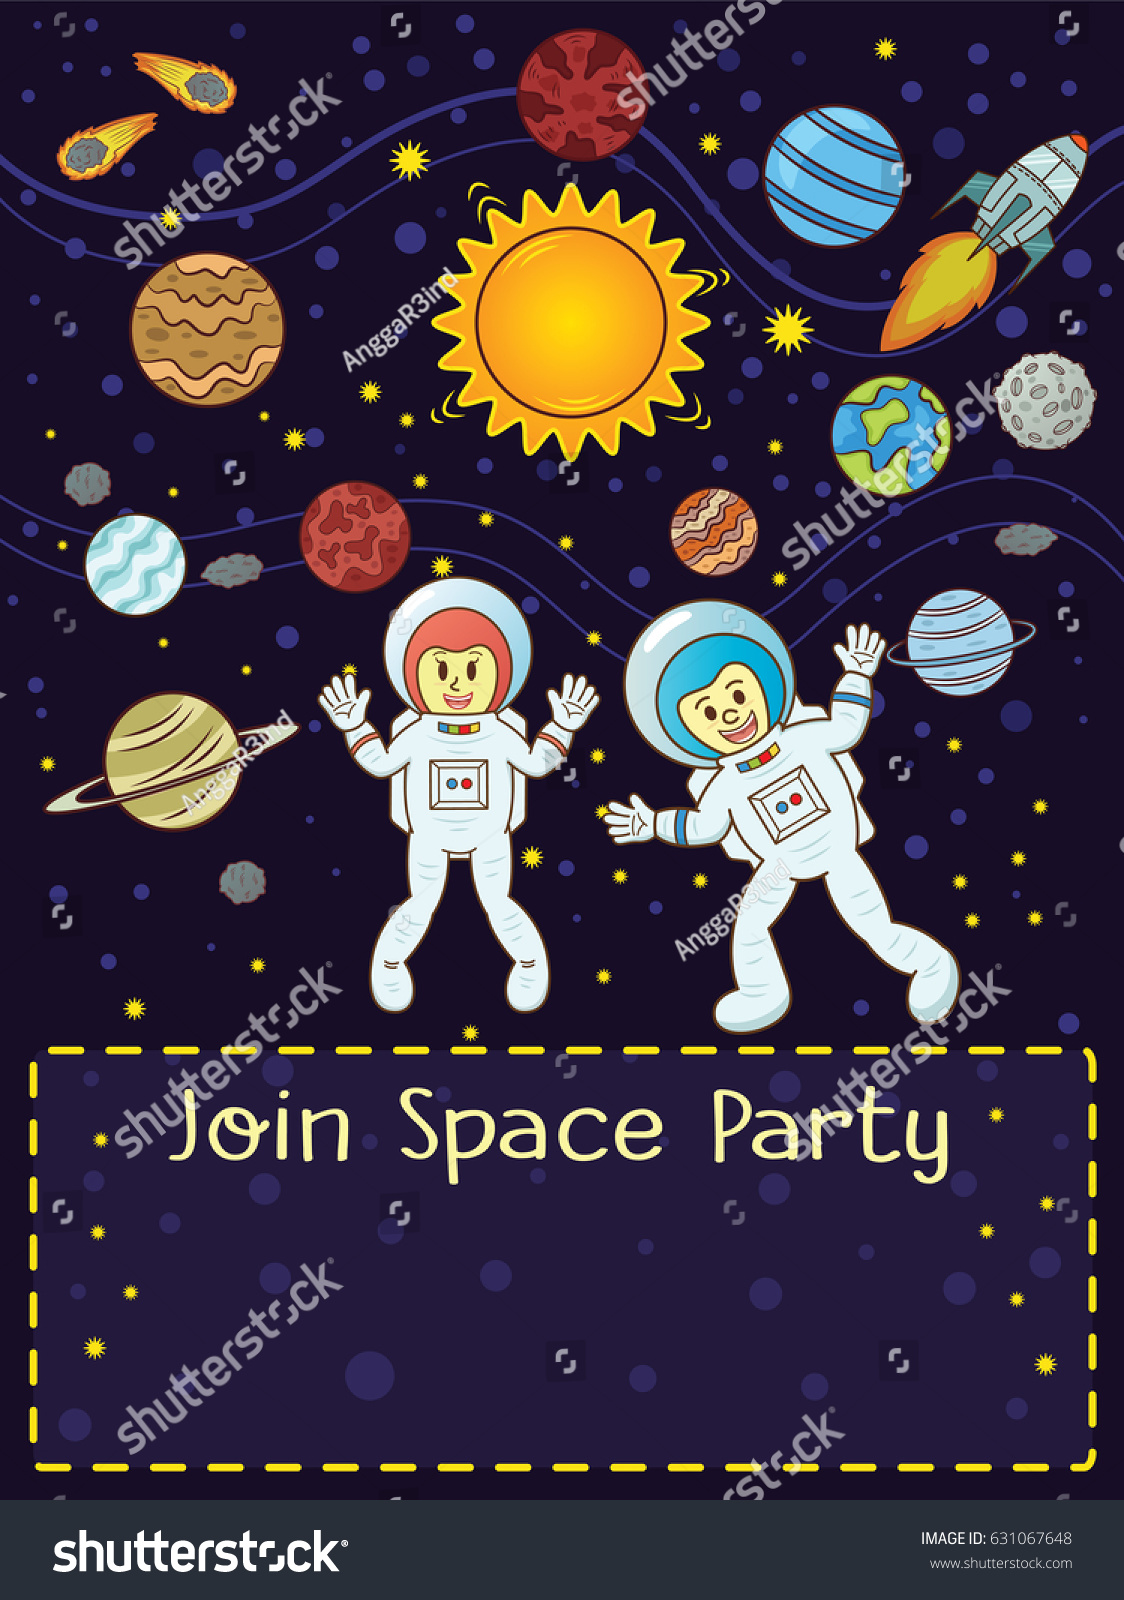 Space Party Invitation Card Astronauts Rocket Vector – Space Party Invitation